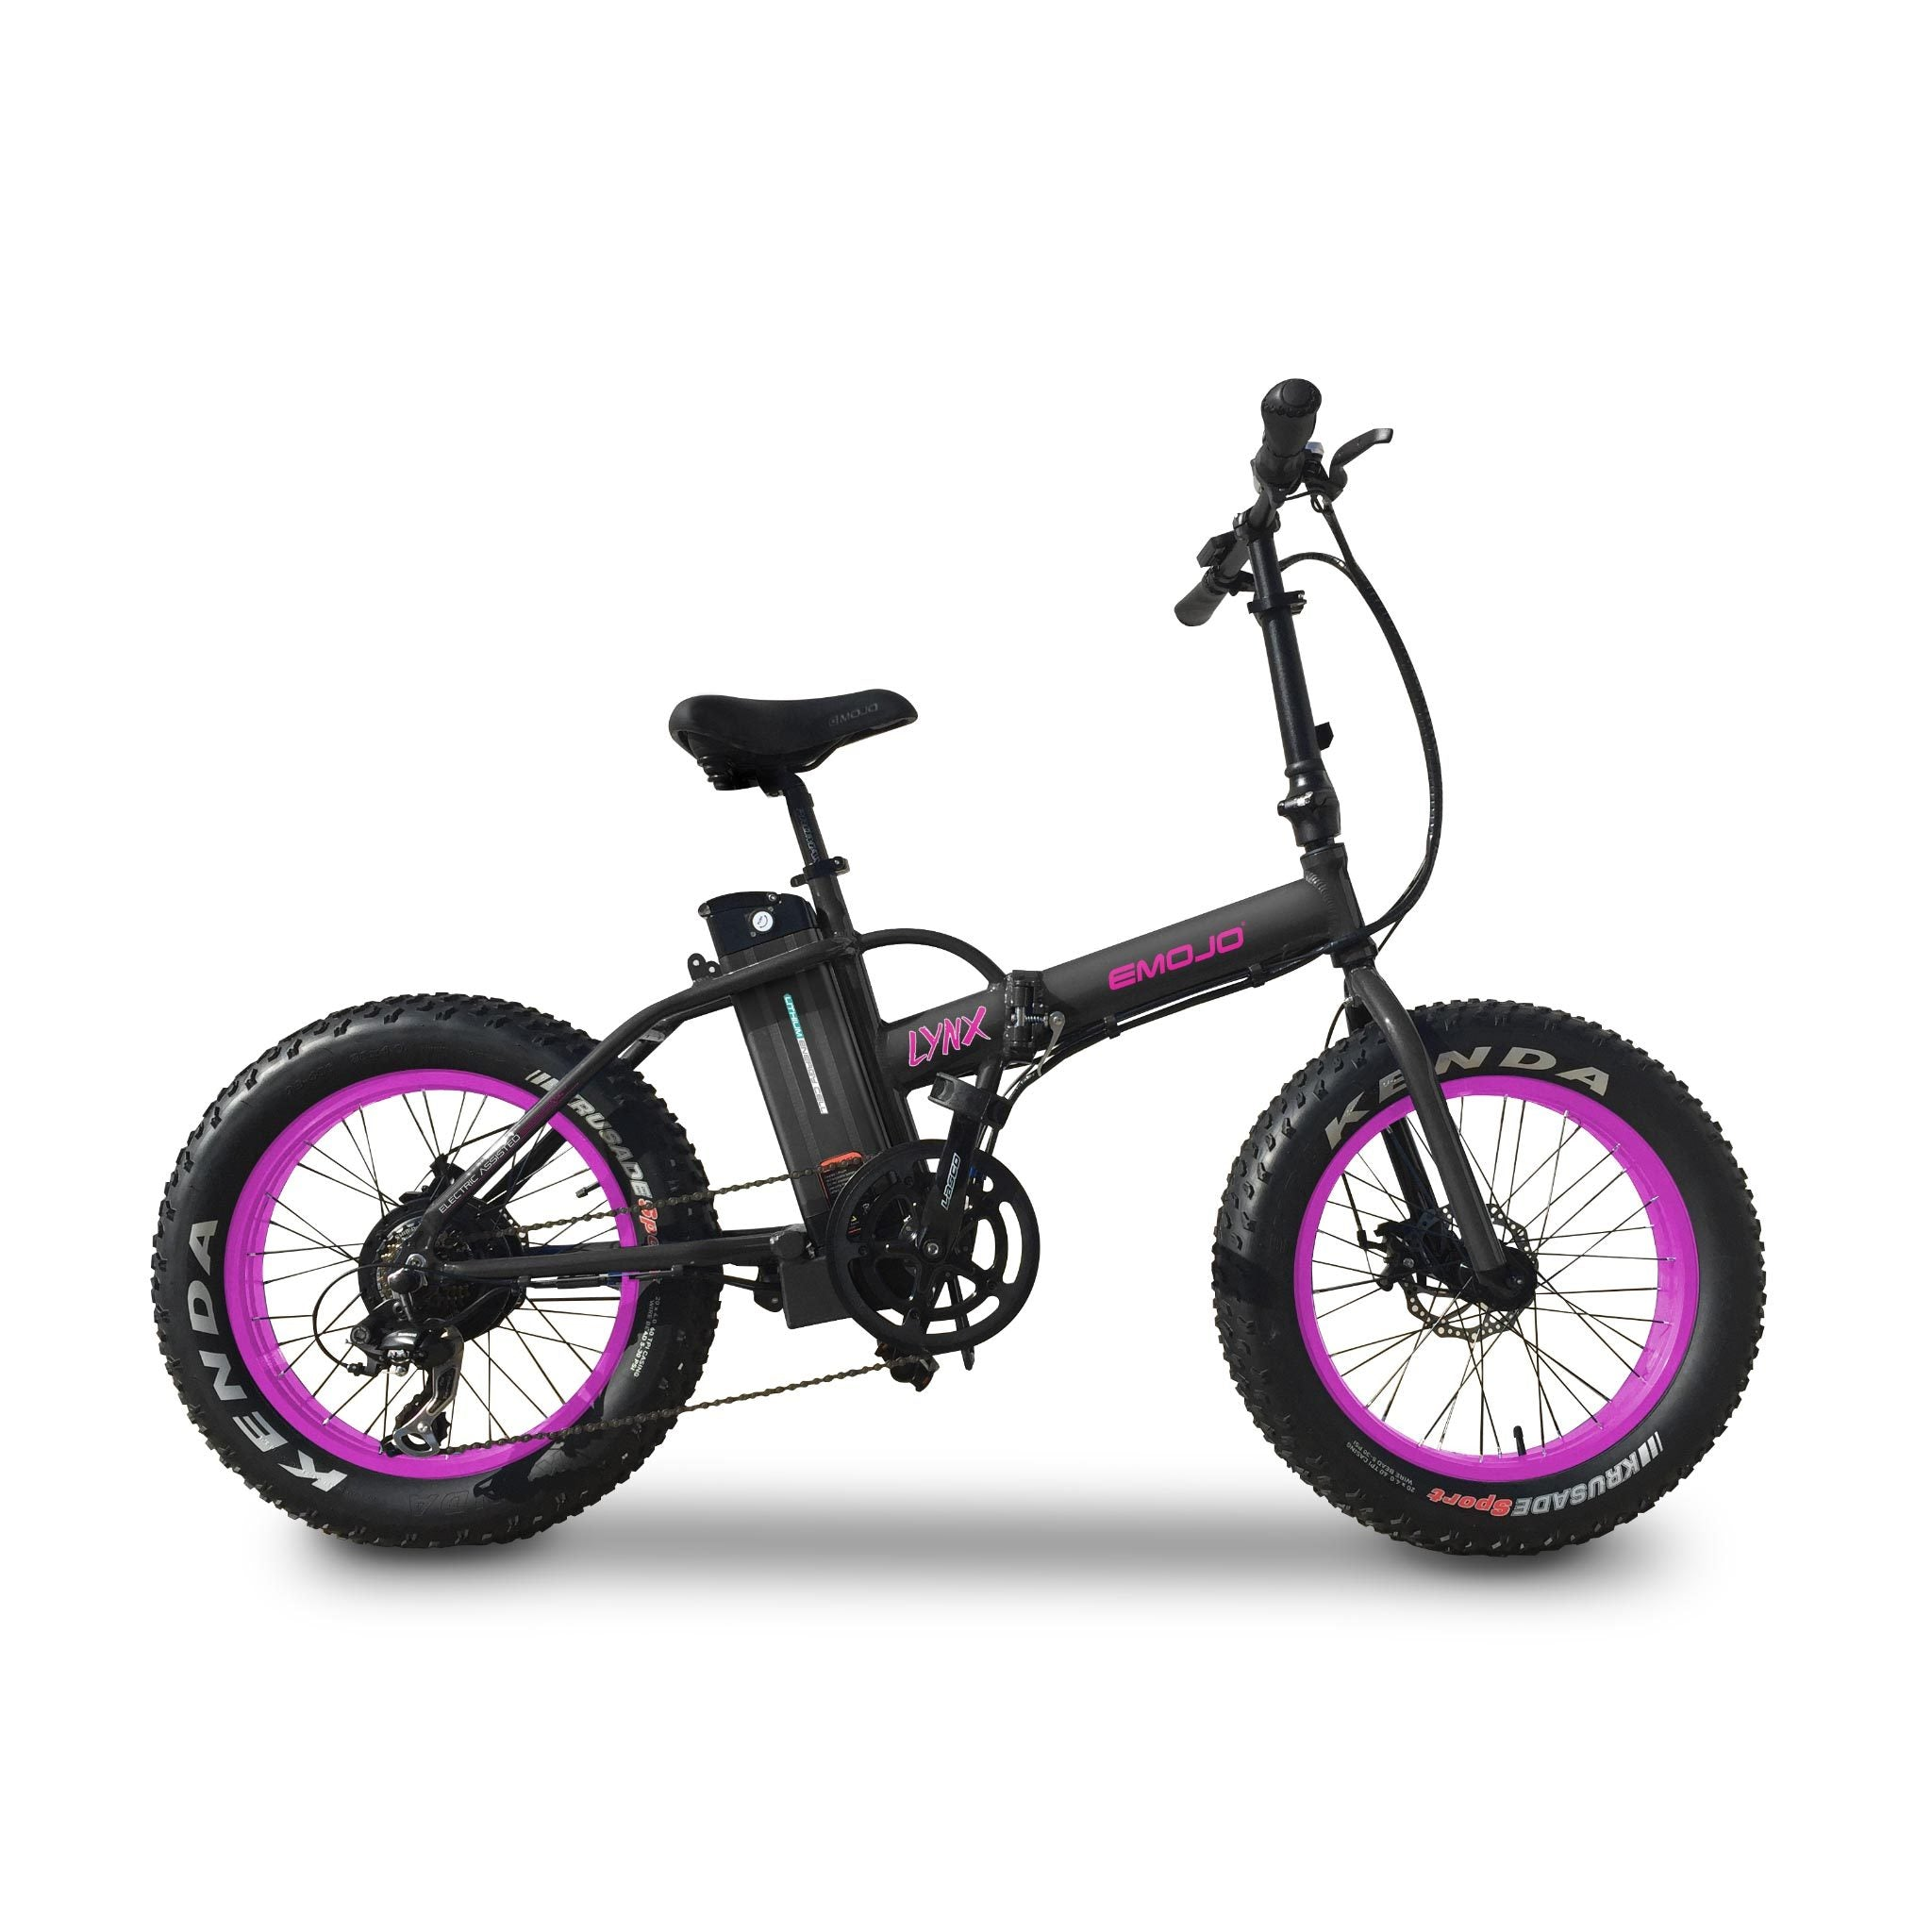 EMOJO LYNX Fat Tire Electric Bicycle 2018